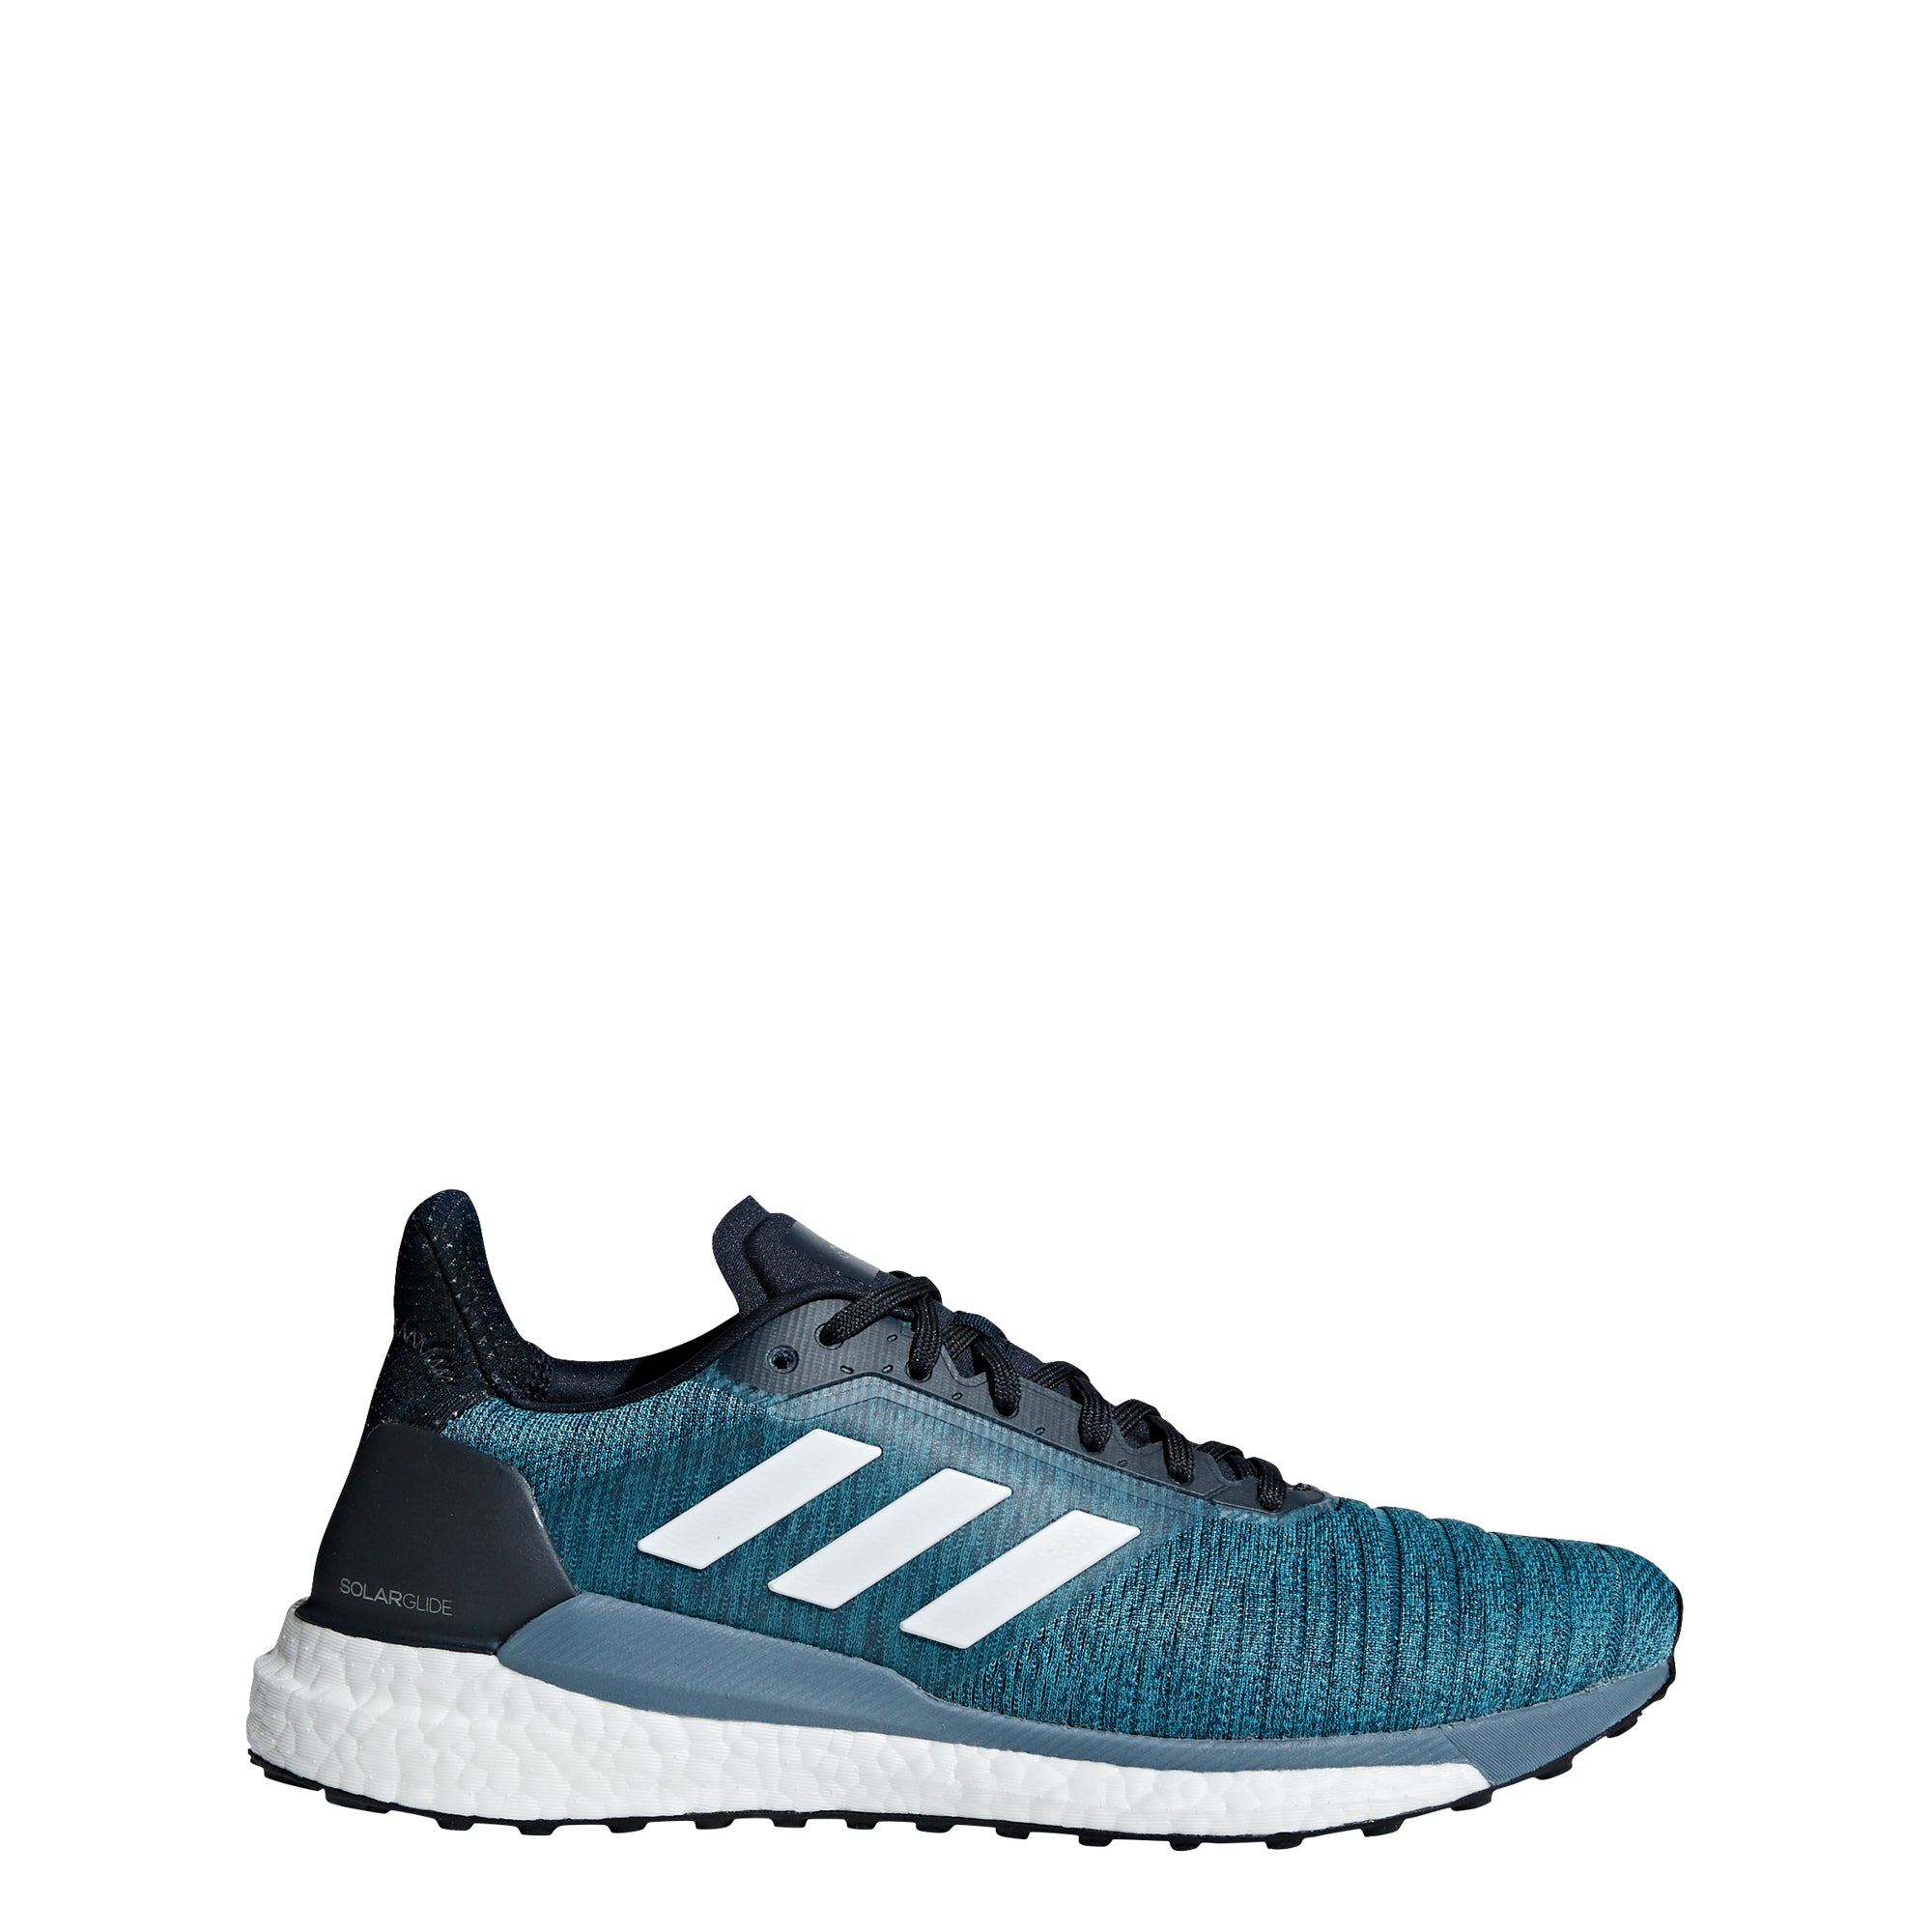 839e3001d4ae Buy adidas Men Solar Glide Running Shoes